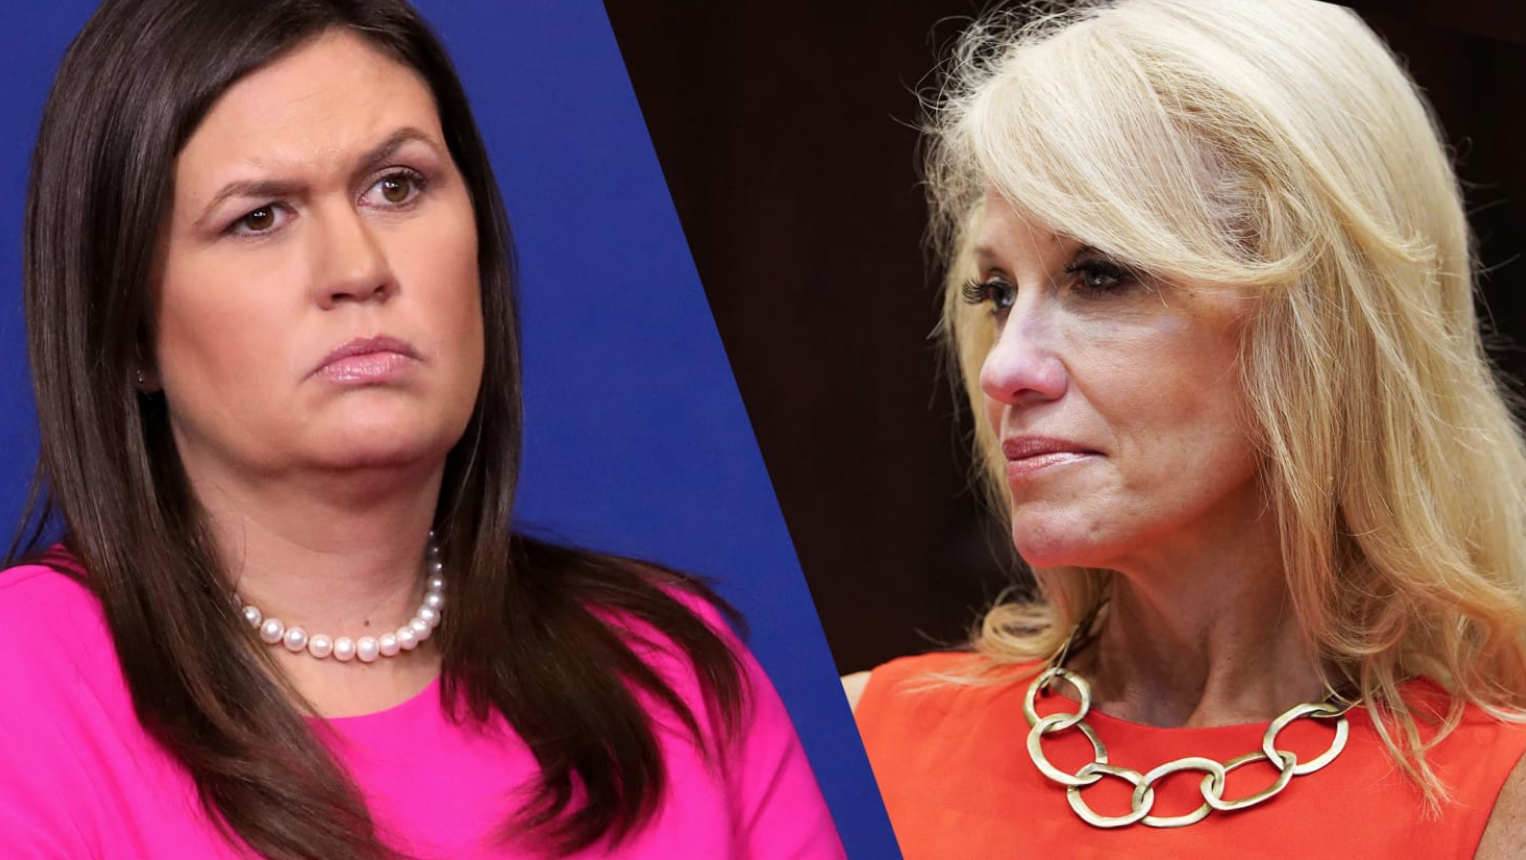 Trump's Favorite Spokesholes (Sarah S. & Kellyanne C.) Silenced By Controversy (#GotBitcoin?)